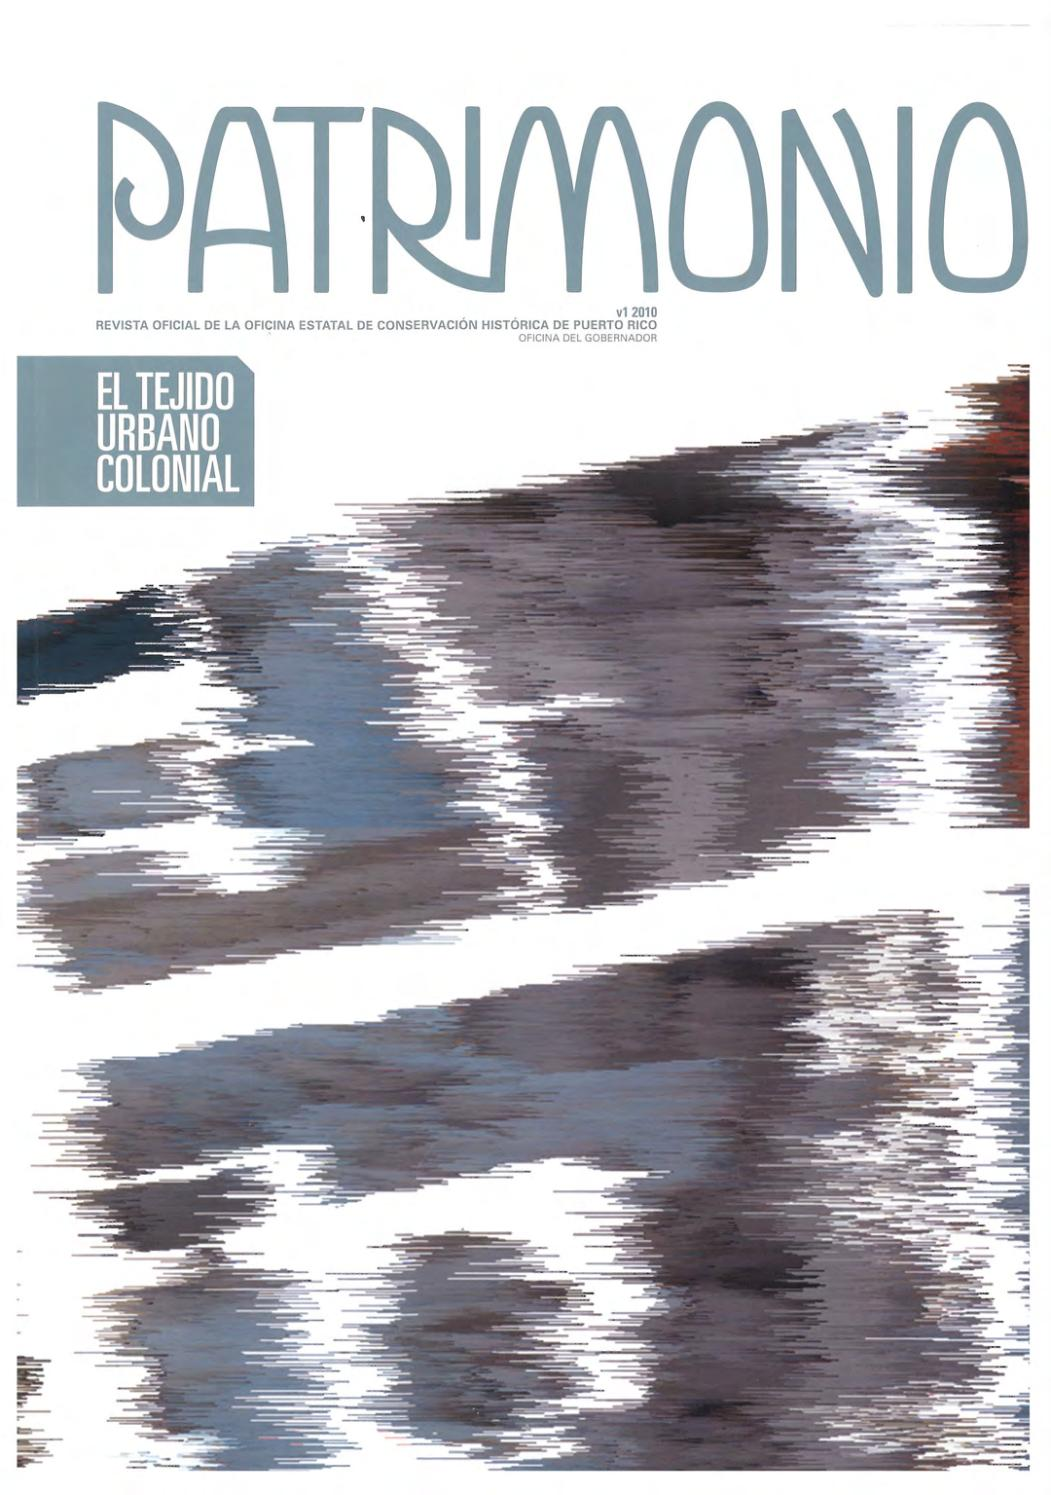 Patrimonio Volumen I by prshpo - issuu